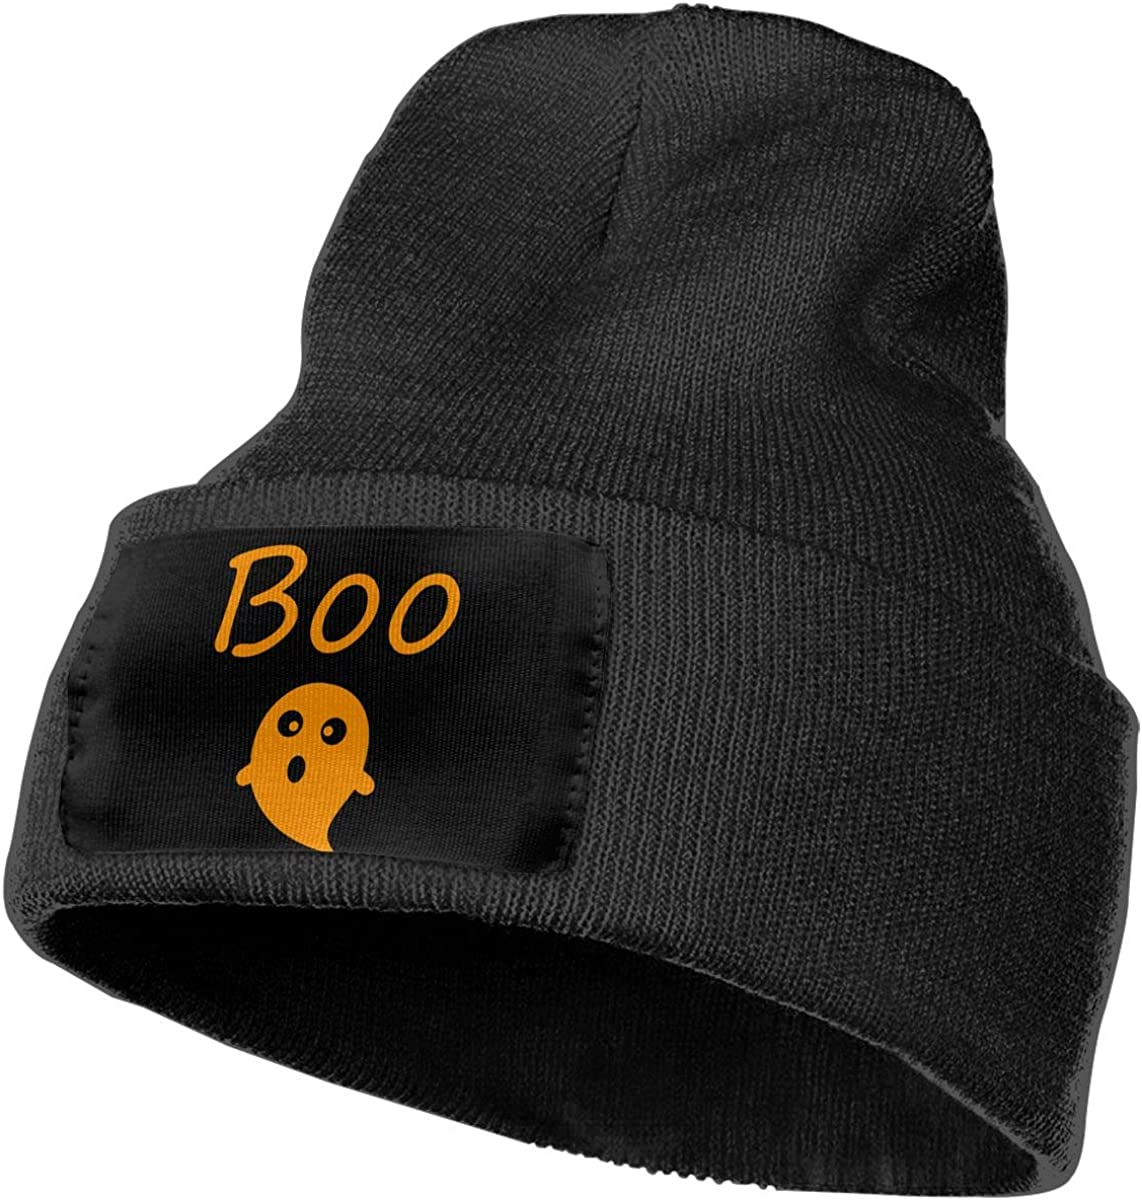 COLLJL-8 Unisex Boo Ghost Outdoor Fashion Knit Beanies Hat Soft Winter Knit Caps